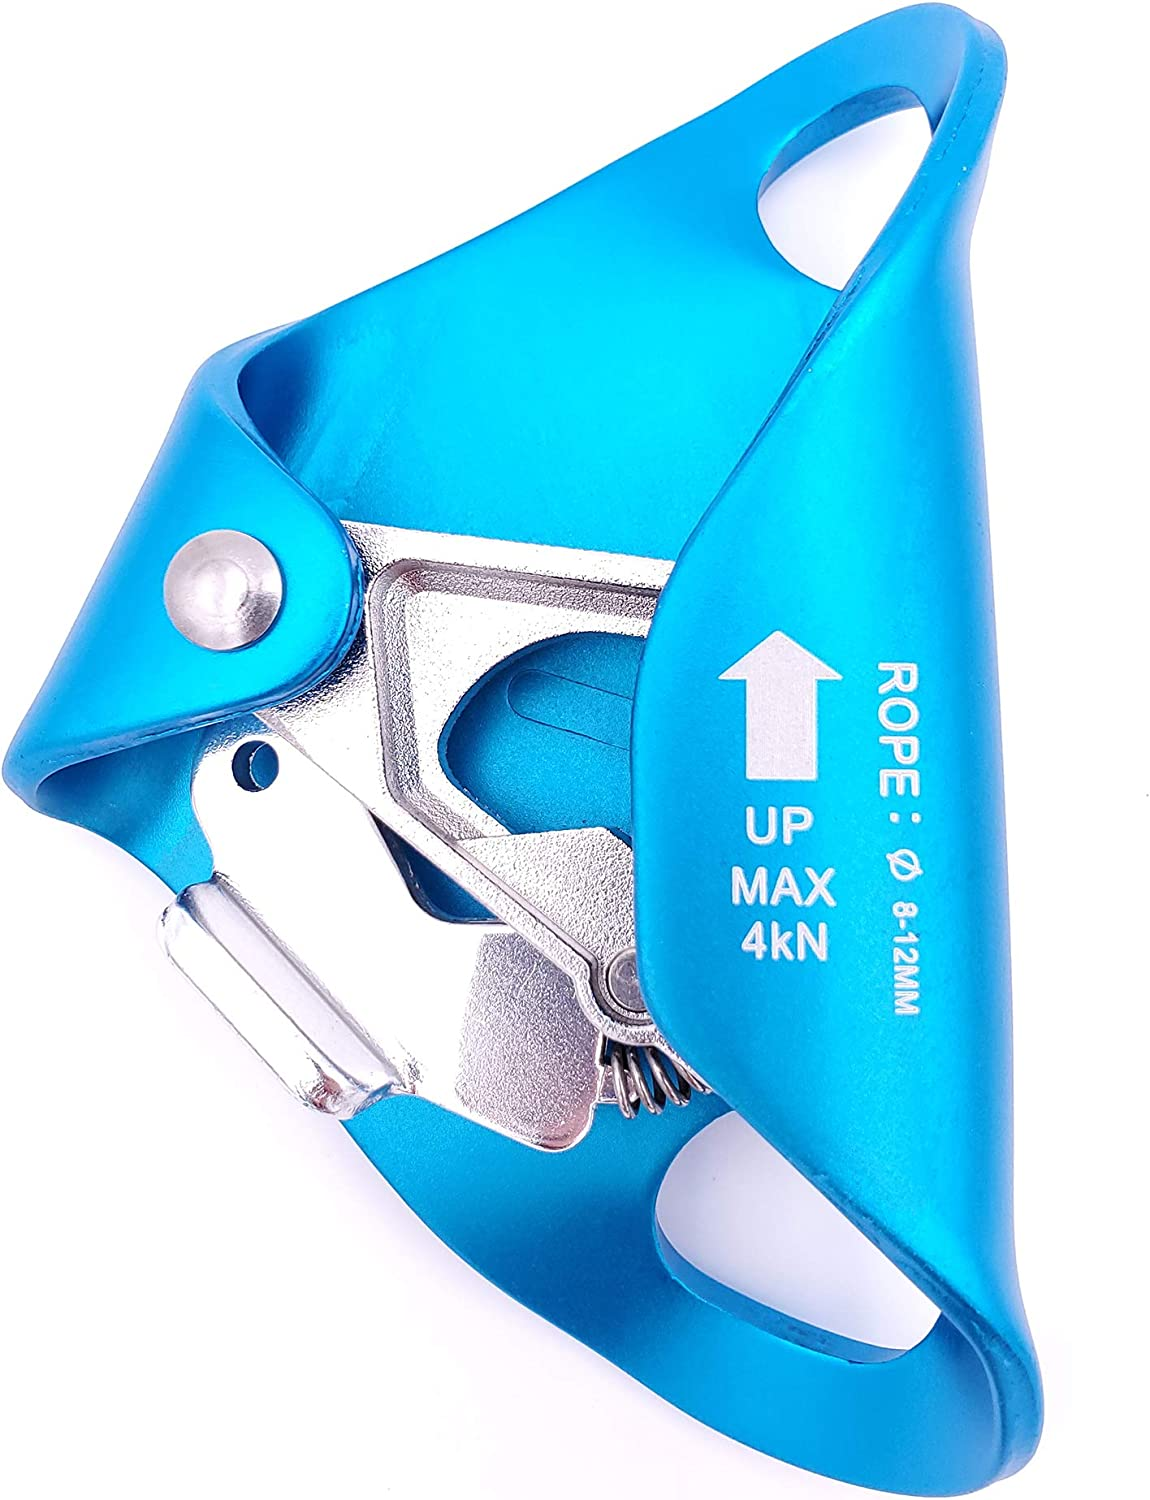 EPIC PEAK Climbing Chest Ascender Abdominal for Vertical Rope Climbing with Free Decal: Toys & Games